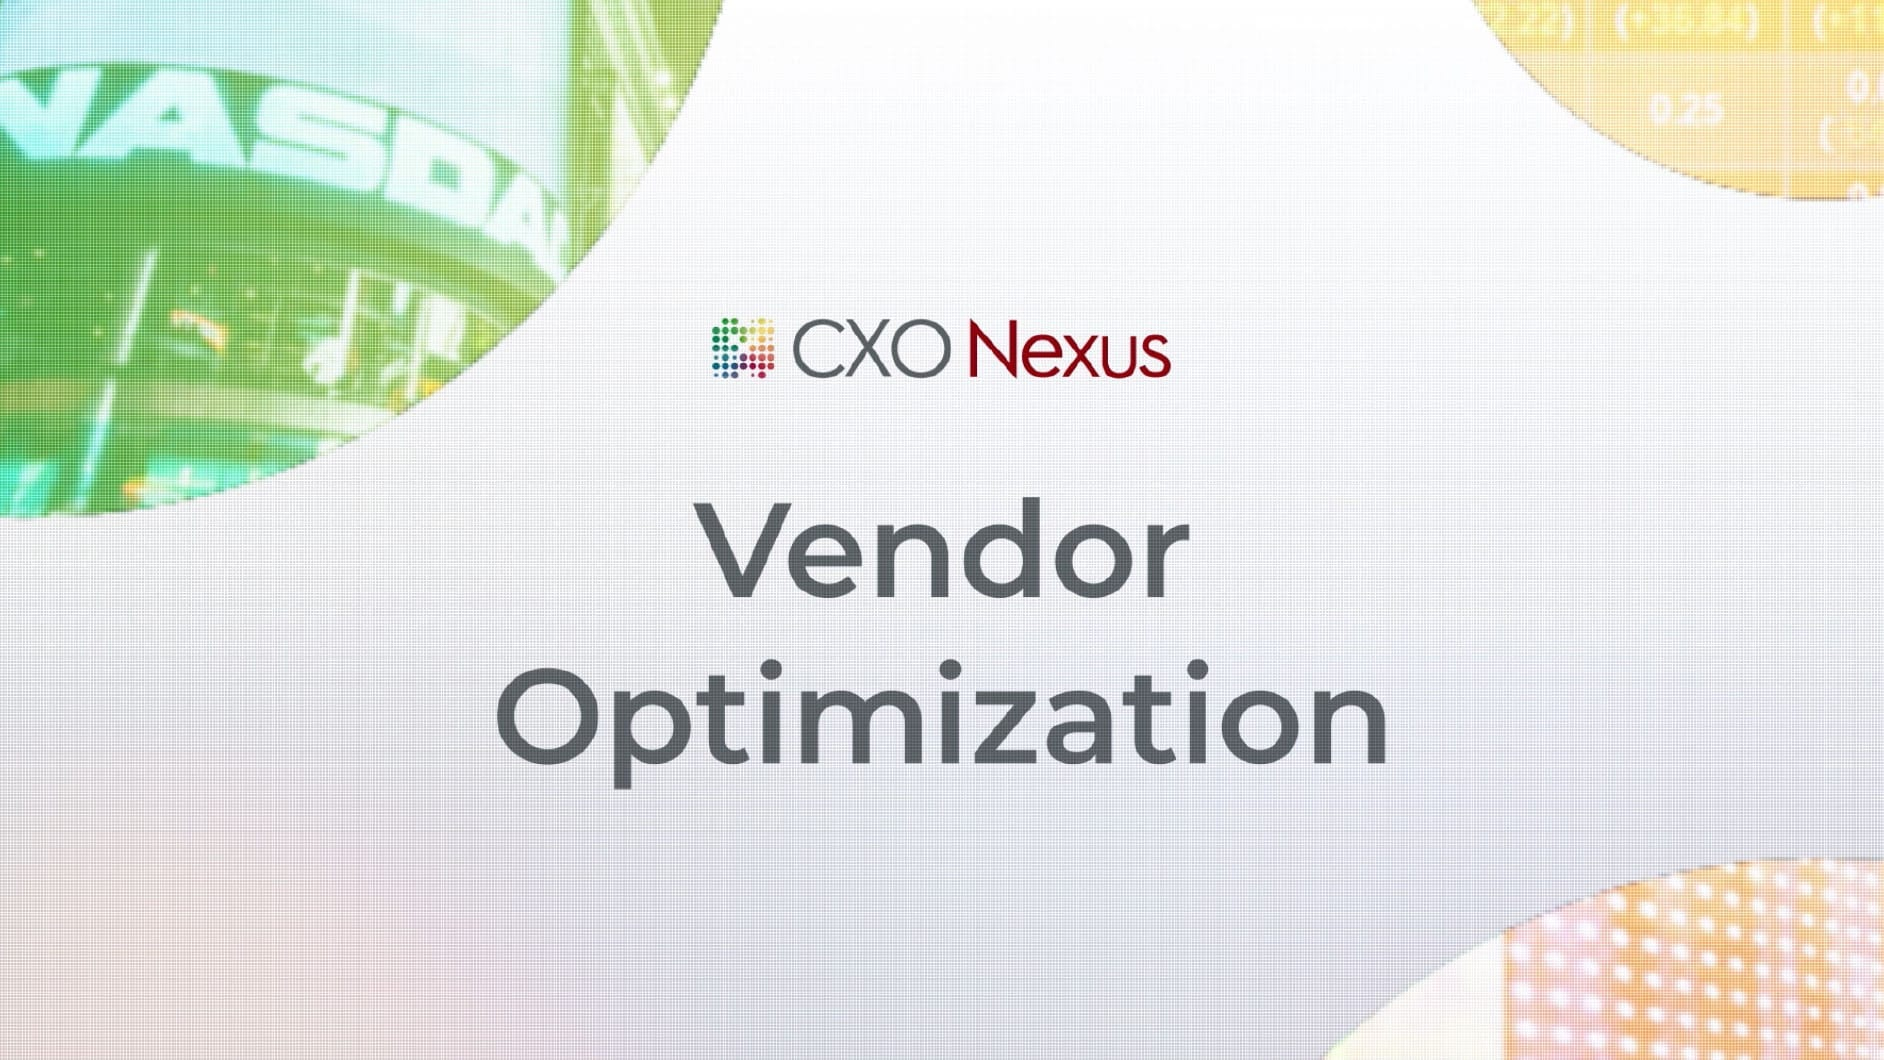 Vendor optimization segment of conversation with Insider Intelligence and Nasdaq about using new technologies to clean and normalize vendor data. Using CXO Nexus to Reveal Spend InCights for Global Enterprise.